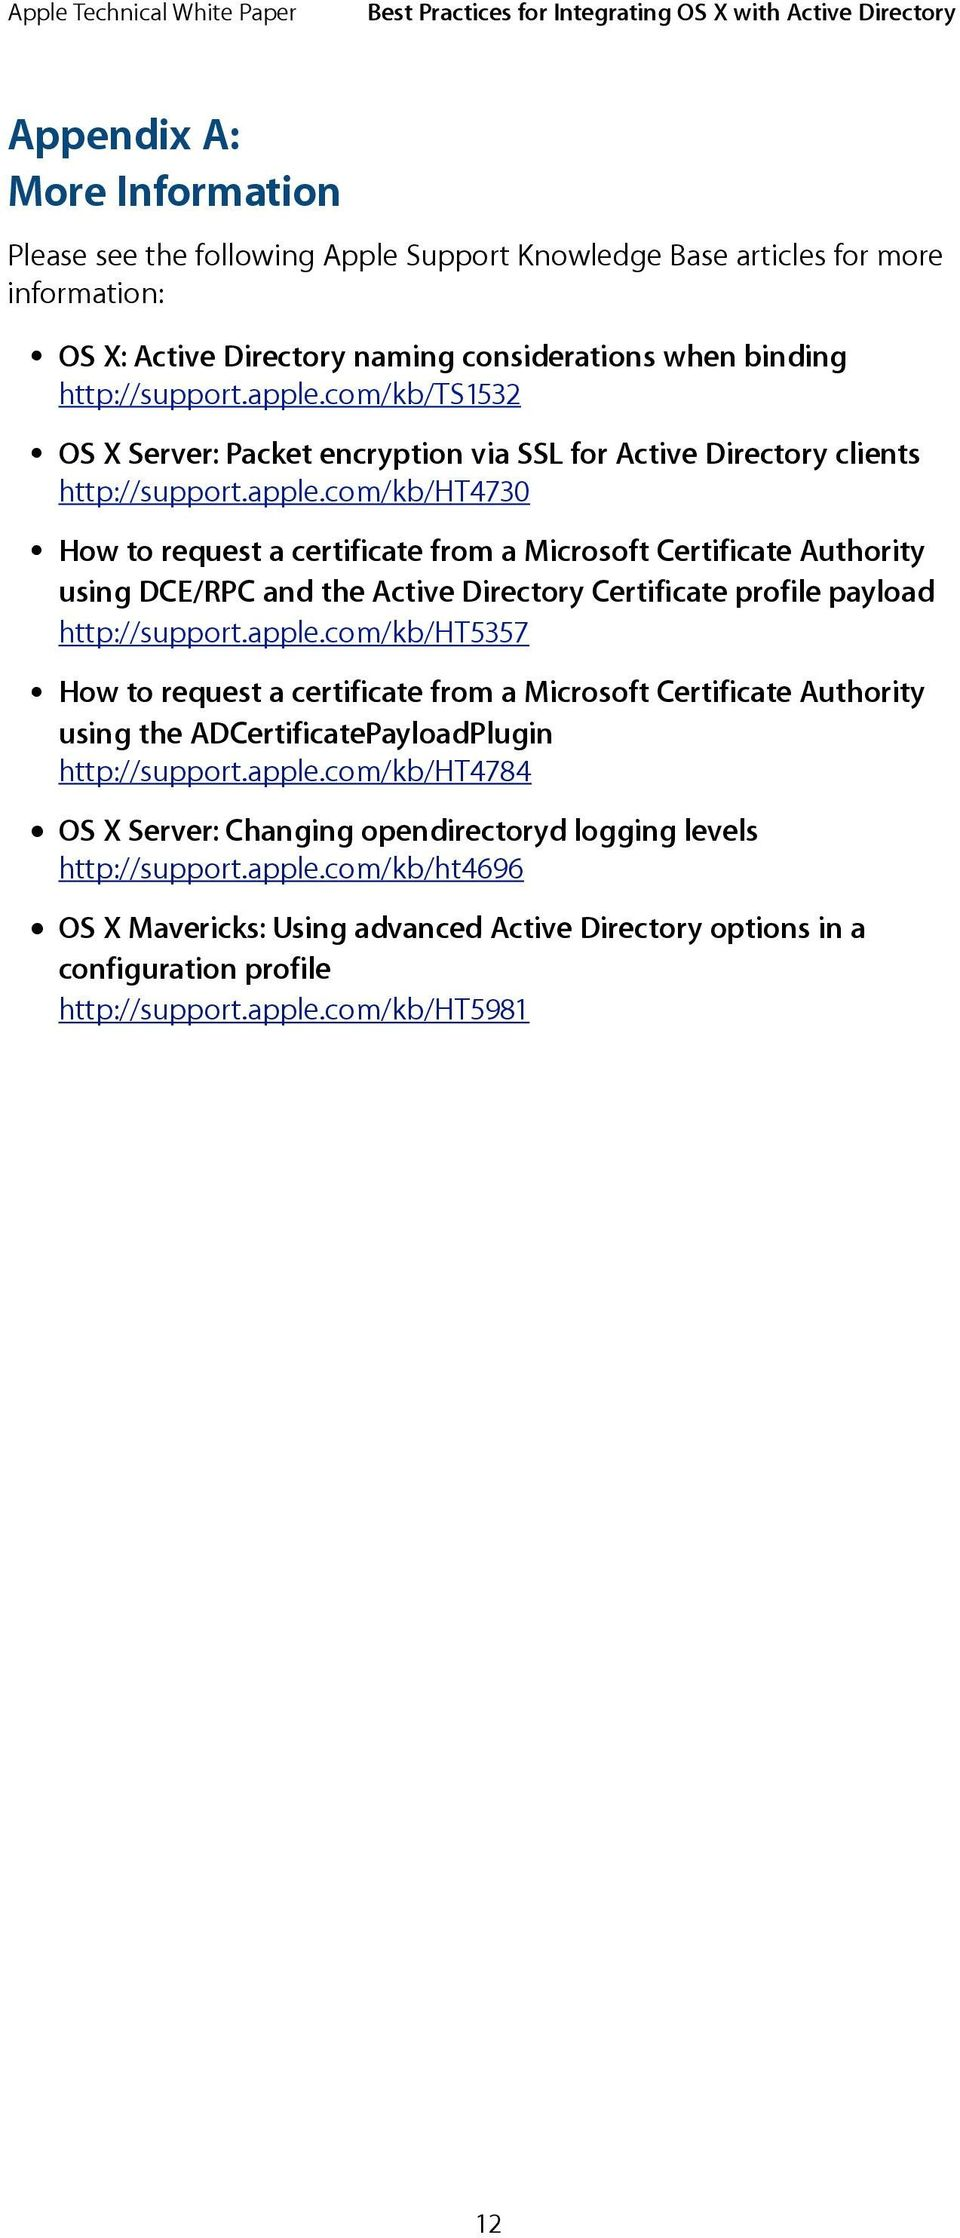 com/kb/ht4730 How to request a certificate from a Microsoft Certificate Authority using DCE/RPC and the Active Directory Certificate profile payload http://support.apple.